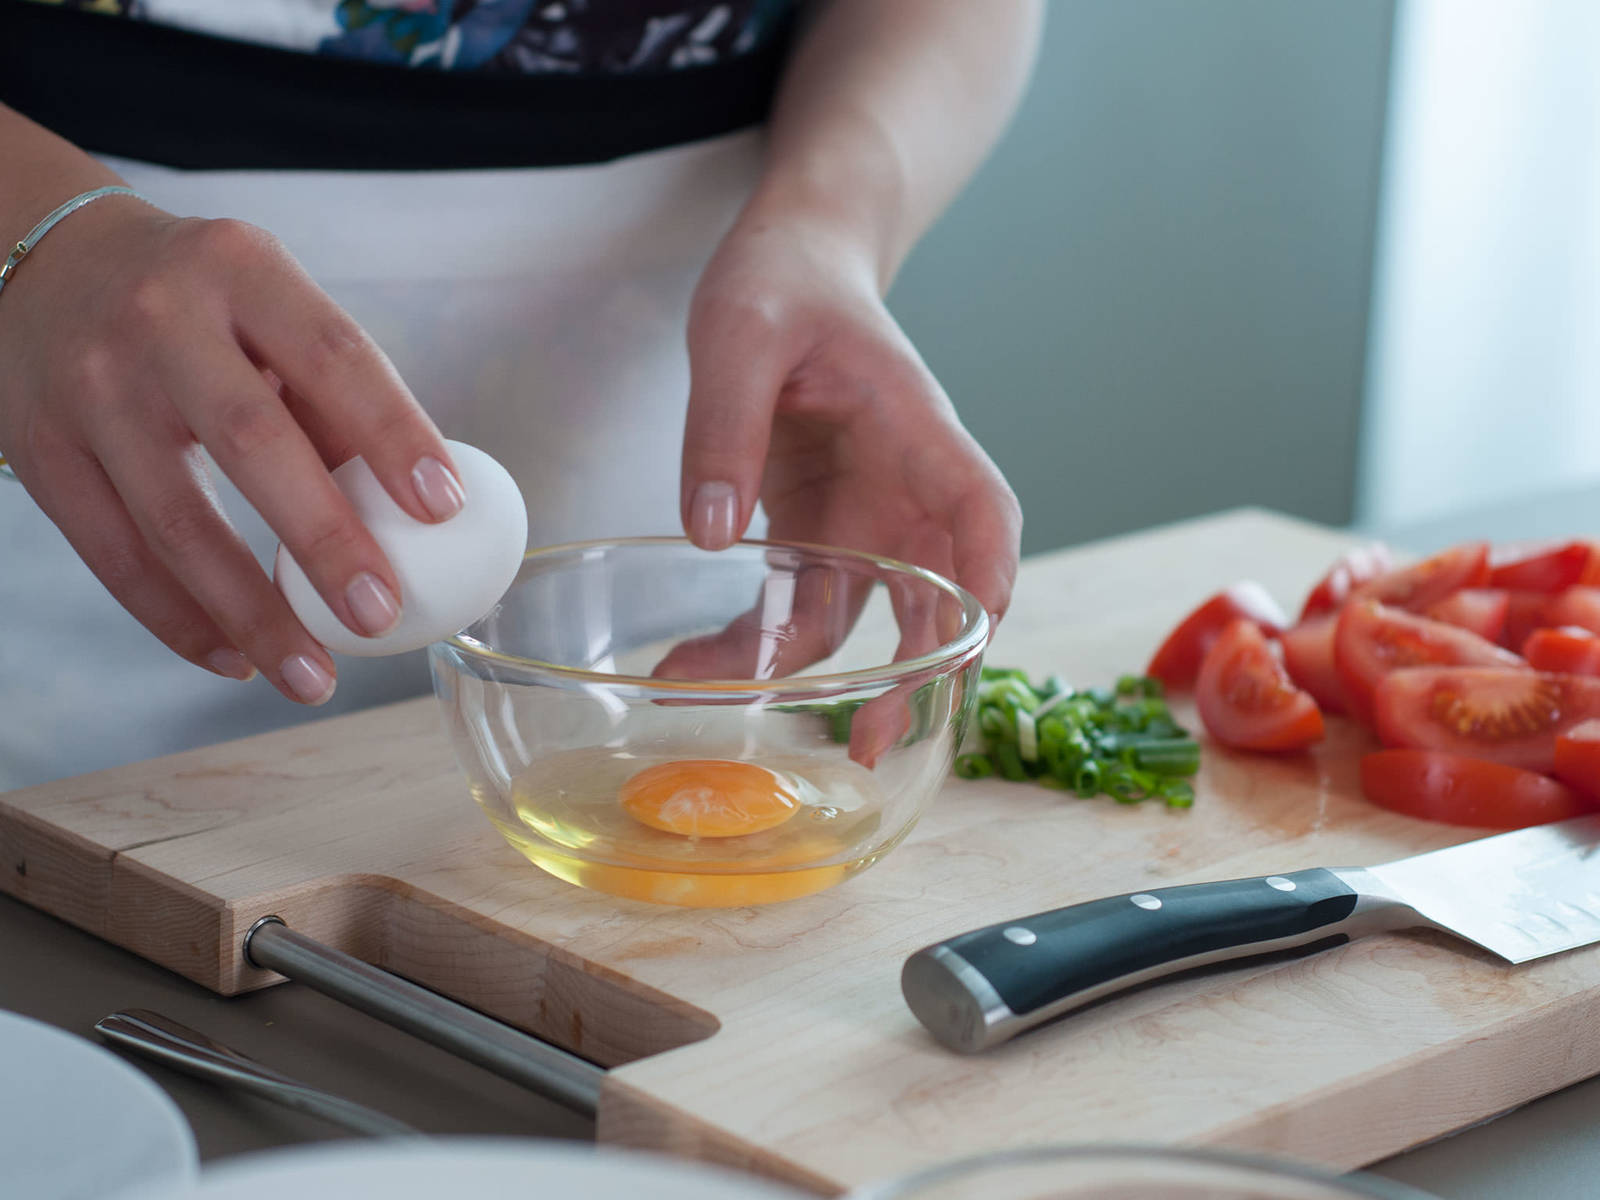 Cut tomatoes into wedges and slice green onion crosswise.  Crack eggs into a small bowl.